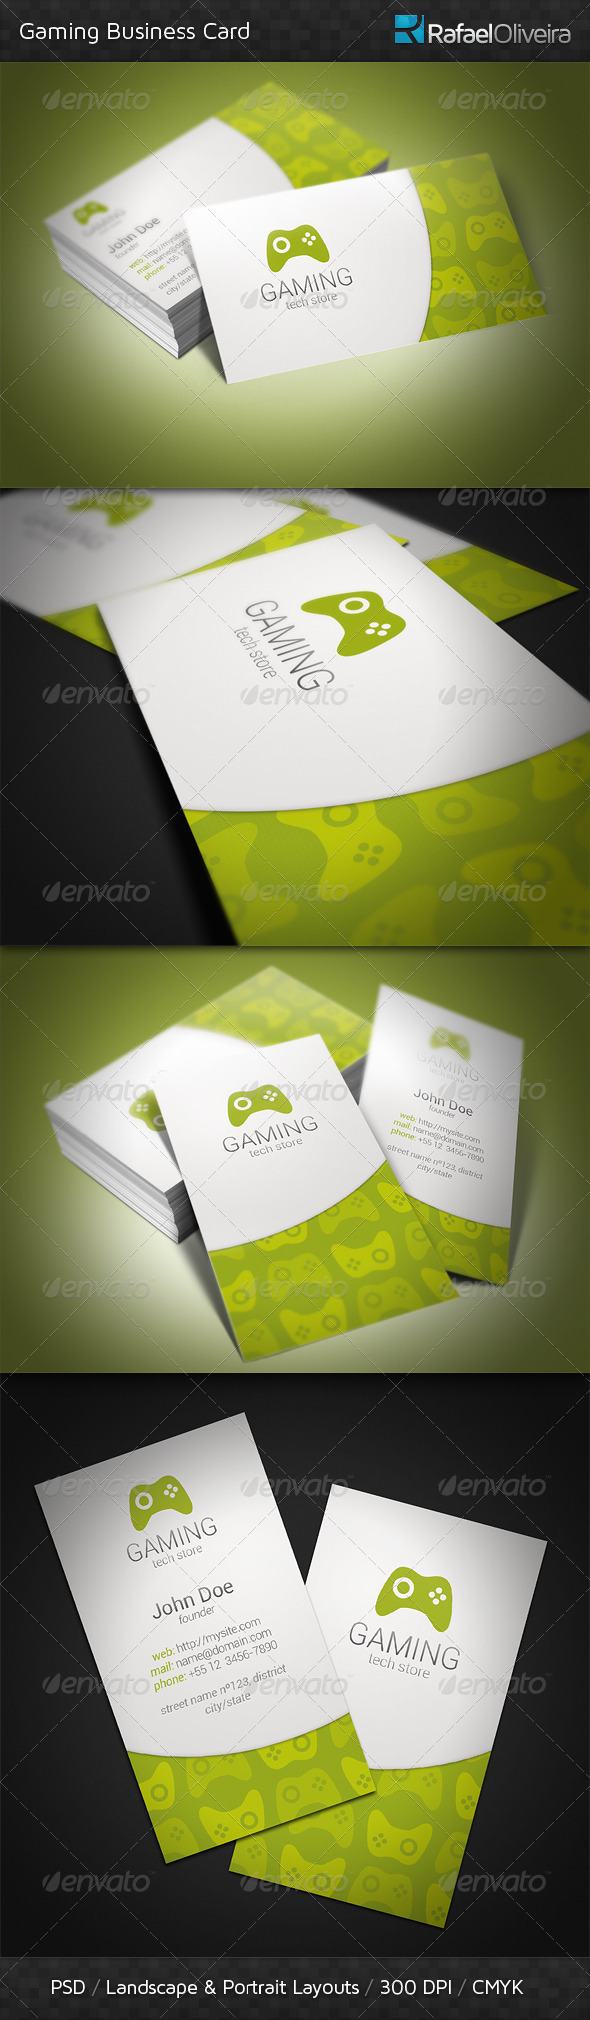 Gaming Business Card - Creative Business Cards